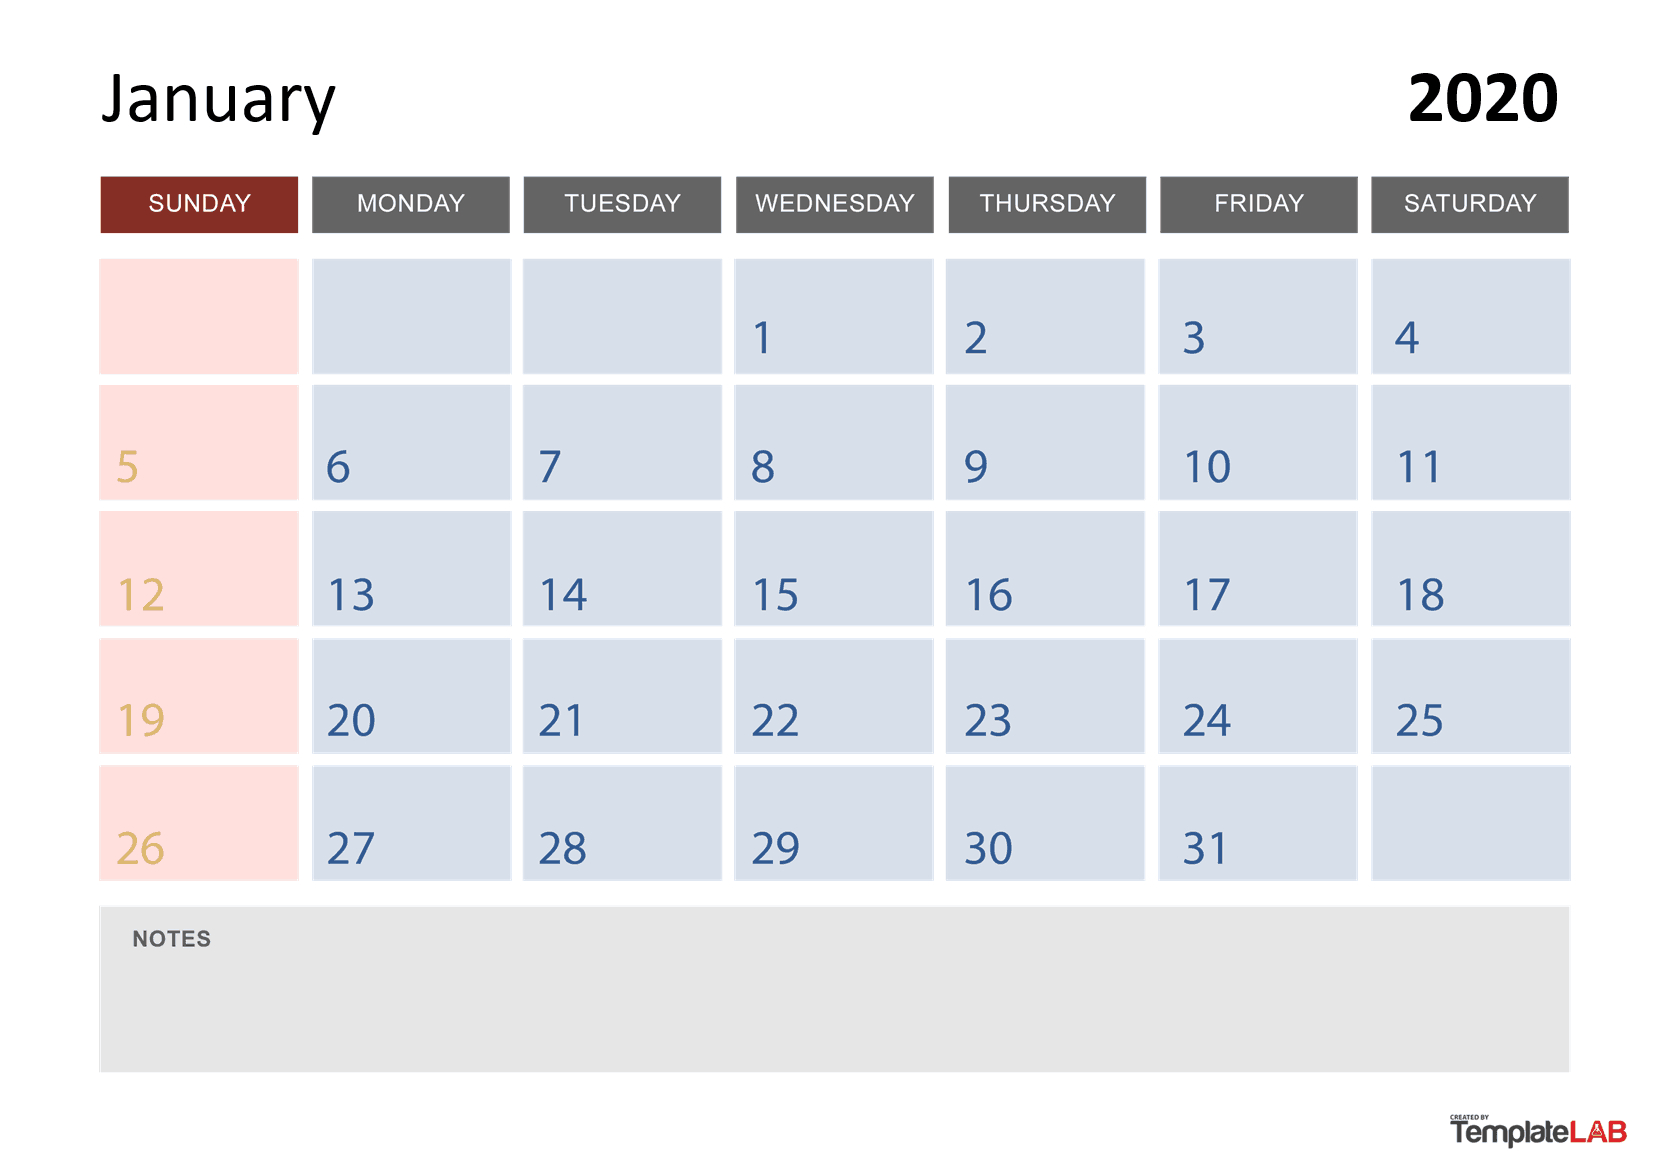 [%2020 Printable Calendars [Monthly, With Holidays, Yearly] ᐅ|2020 Calendar Blank Template|2020 Calendar Blank Template%]